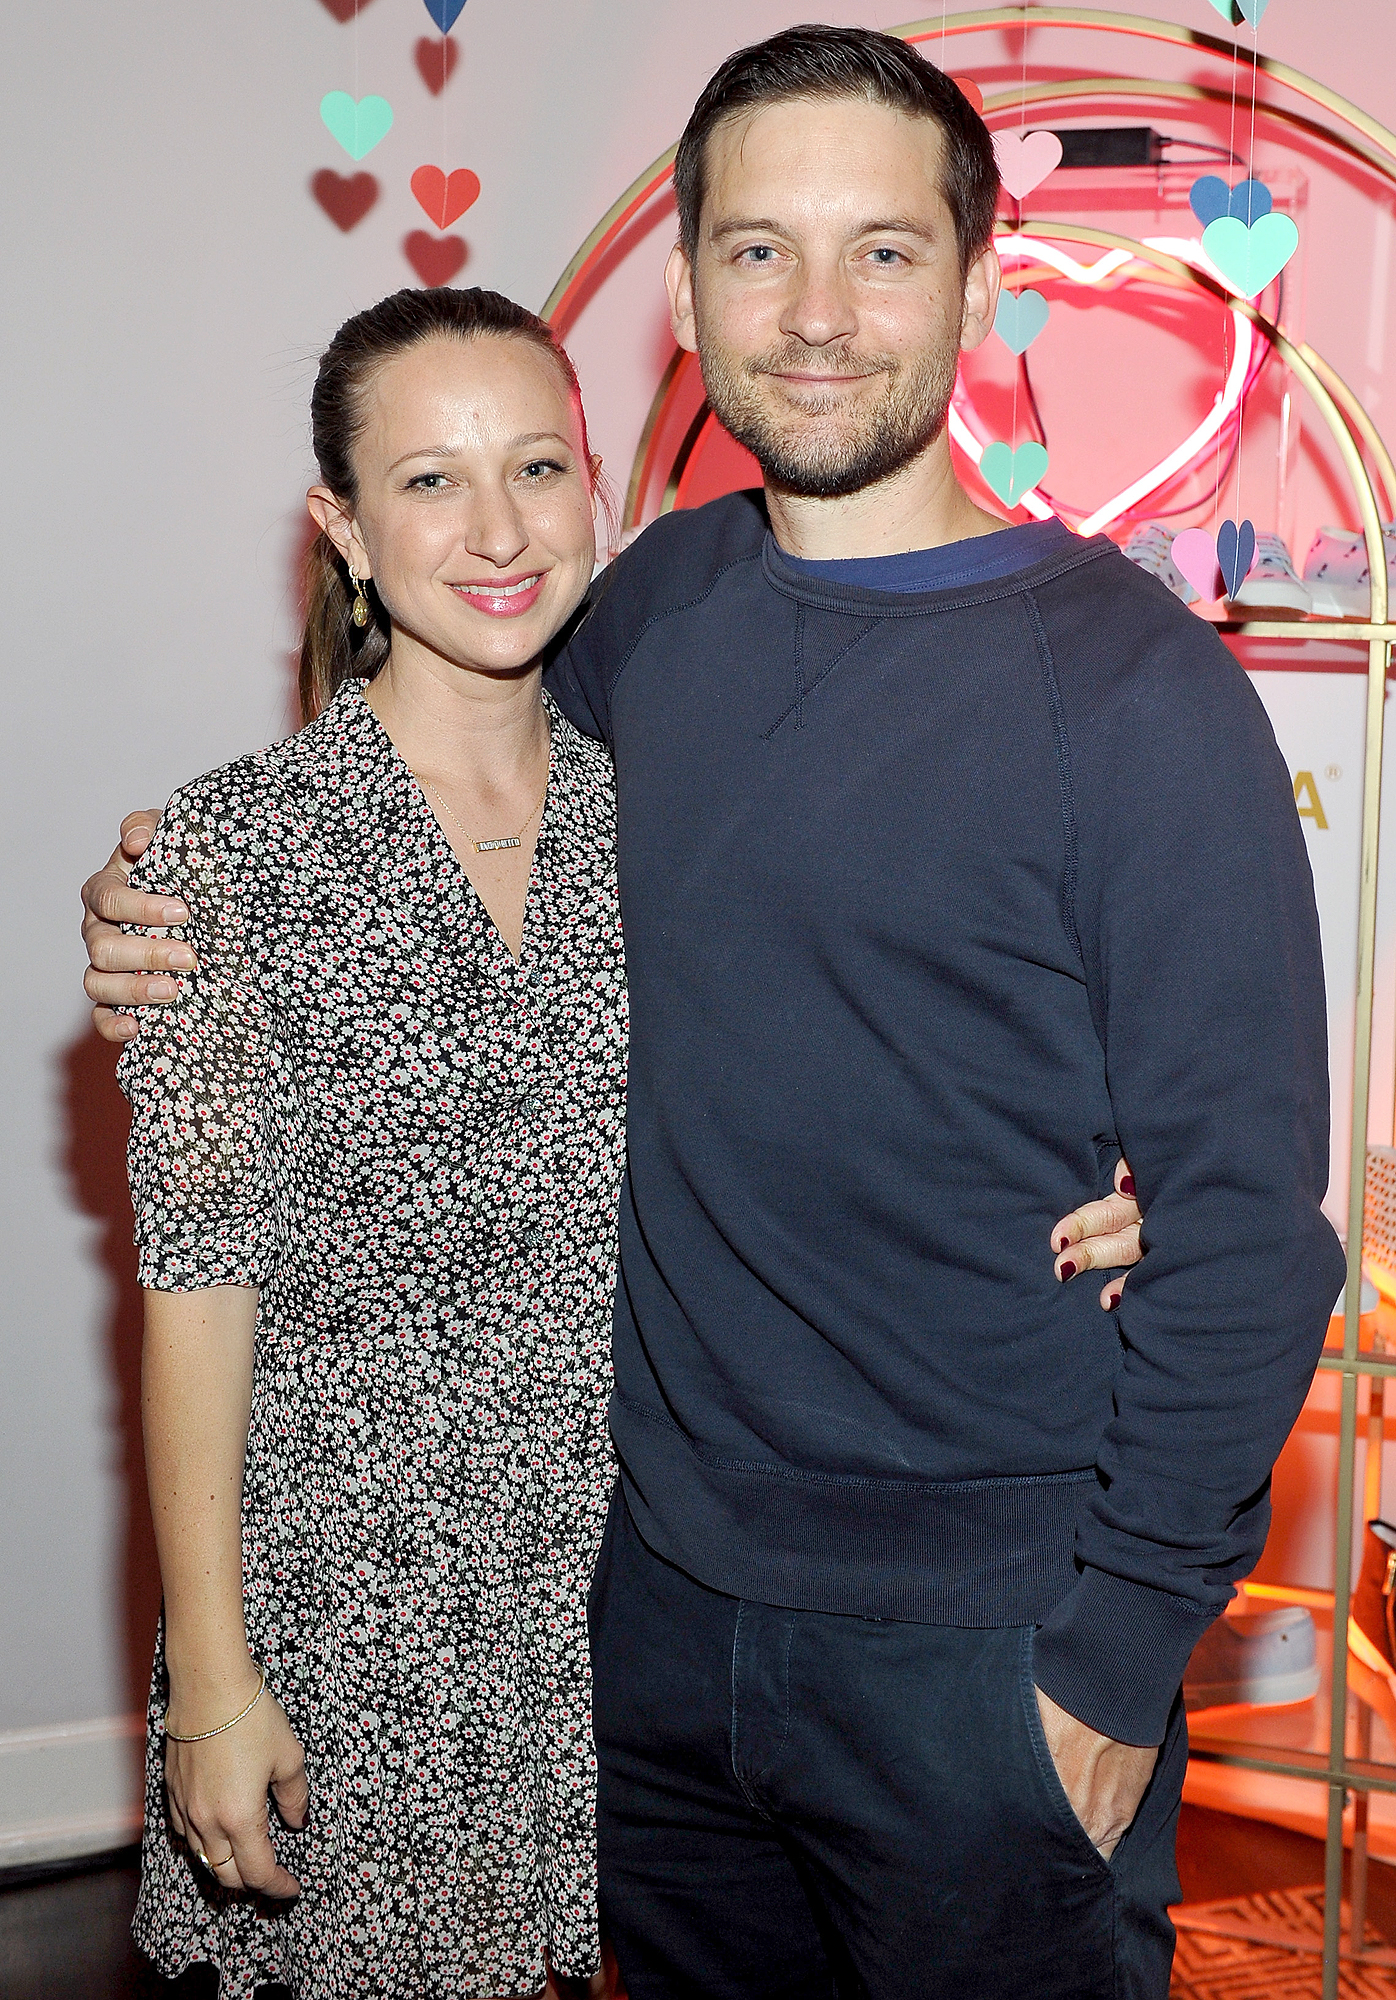 LOS ANGELES, CA - FEBRUARY 09: Designer Jennifer Meyer (L) and actor Tobey Maguire attend the Superga XO Jennifer Meyer Collection Launch Celebration at Chateau Marmont on February 9, 2016 in Los Angeles, California. (Photo by Donato Sardella/WireImage)